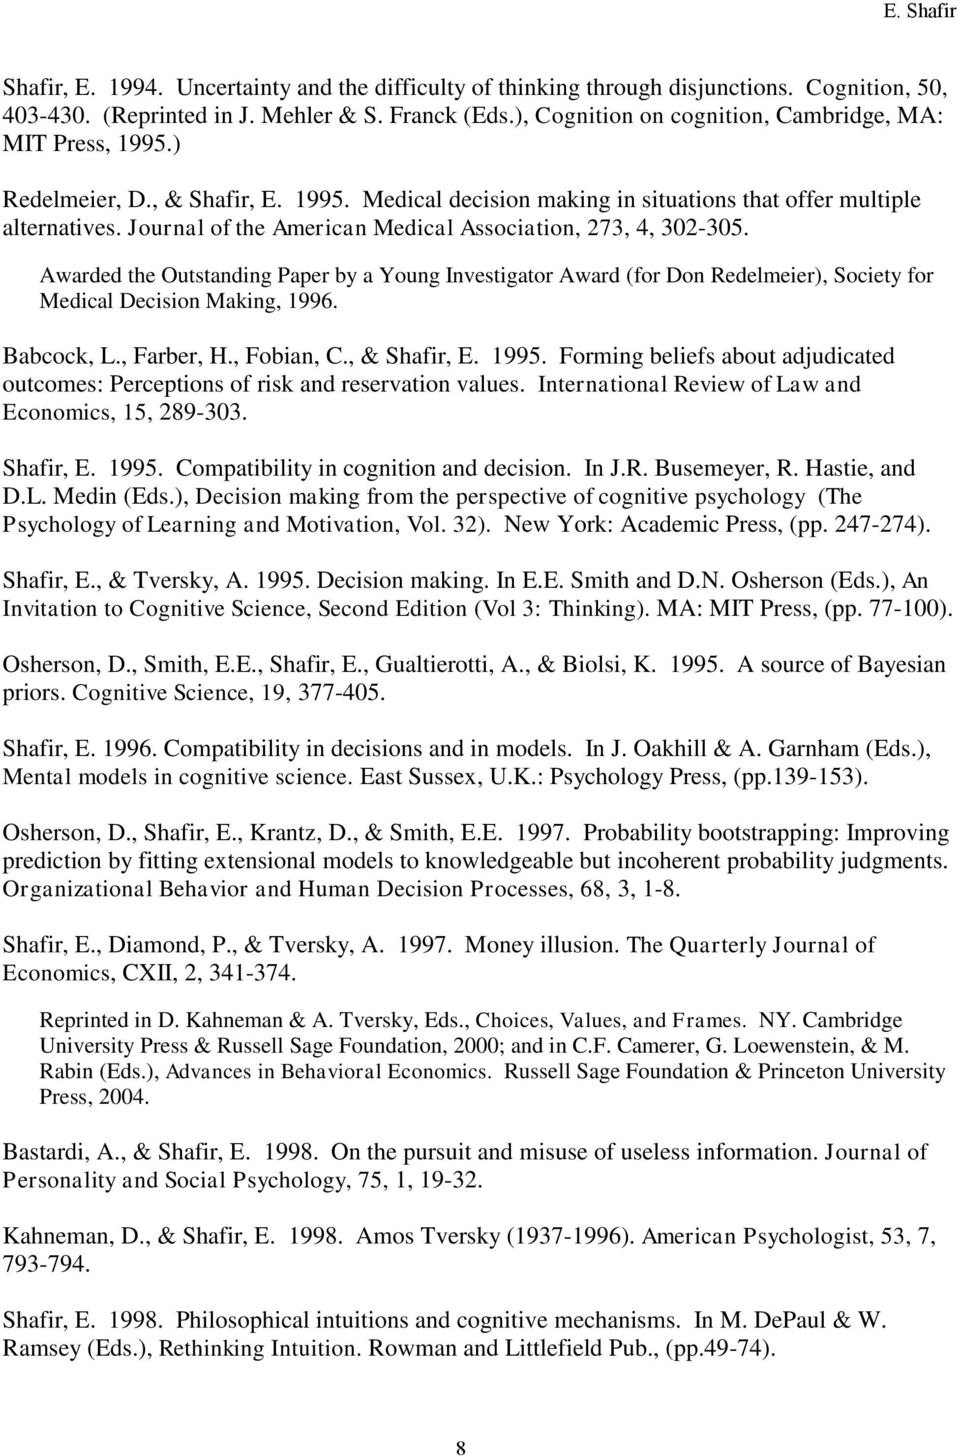 Journal of the American Medical Association, 273, 4, 302-305. Awarded the Outstanding Paper by a Young Investigator Award (for Don Redelmeier), Society for Medical Decision Making, 1996. Babcock, L.